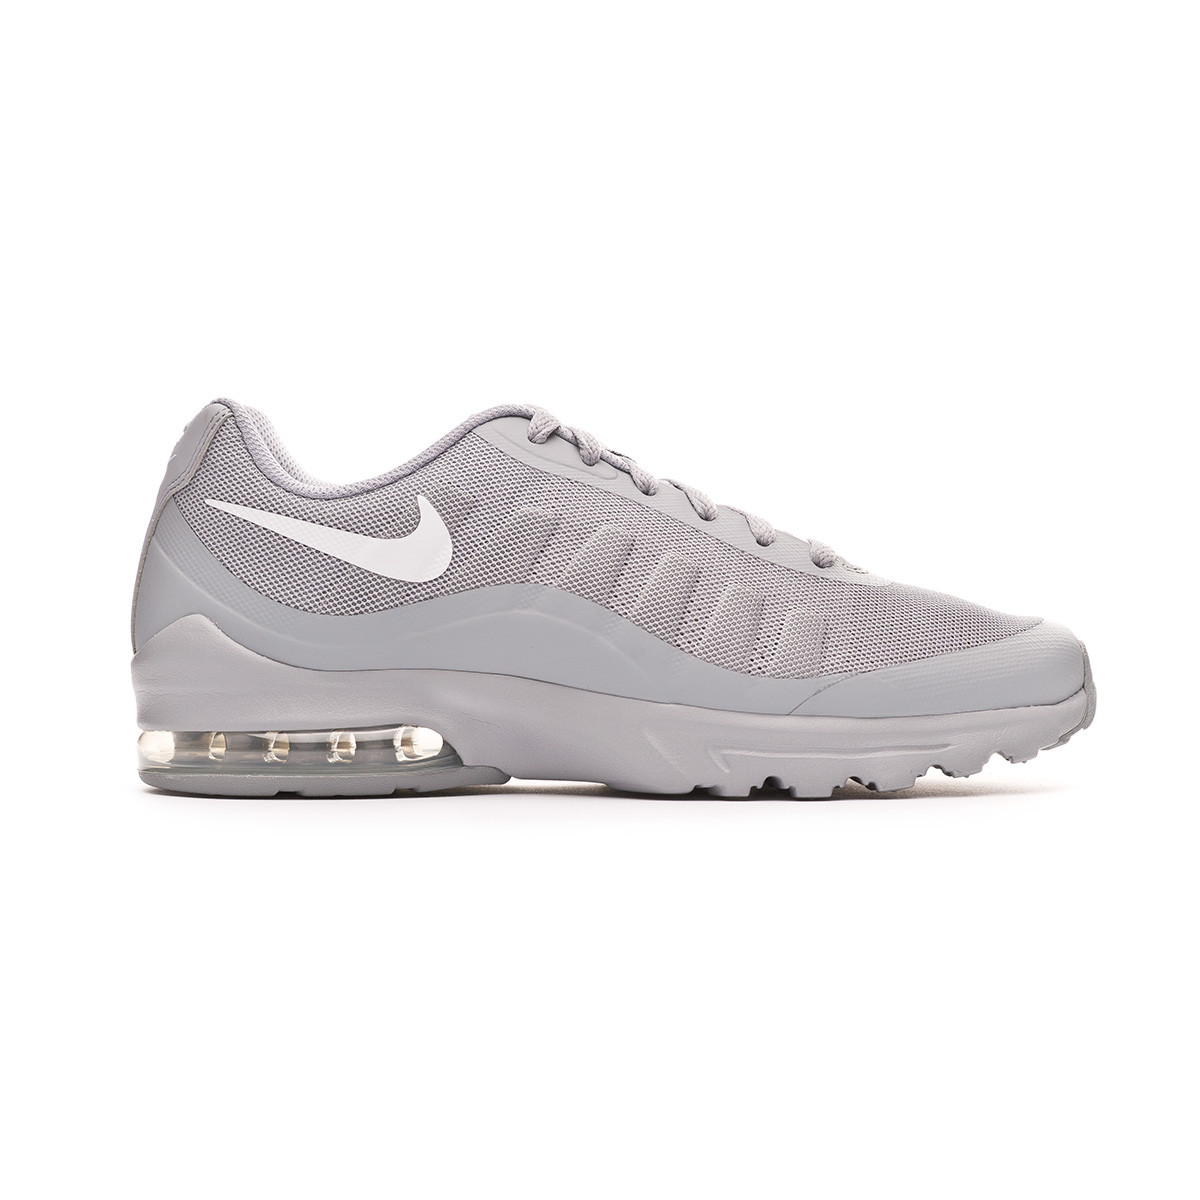 Baskets Nike Air Max Invigor White Black Tienda de fútbol